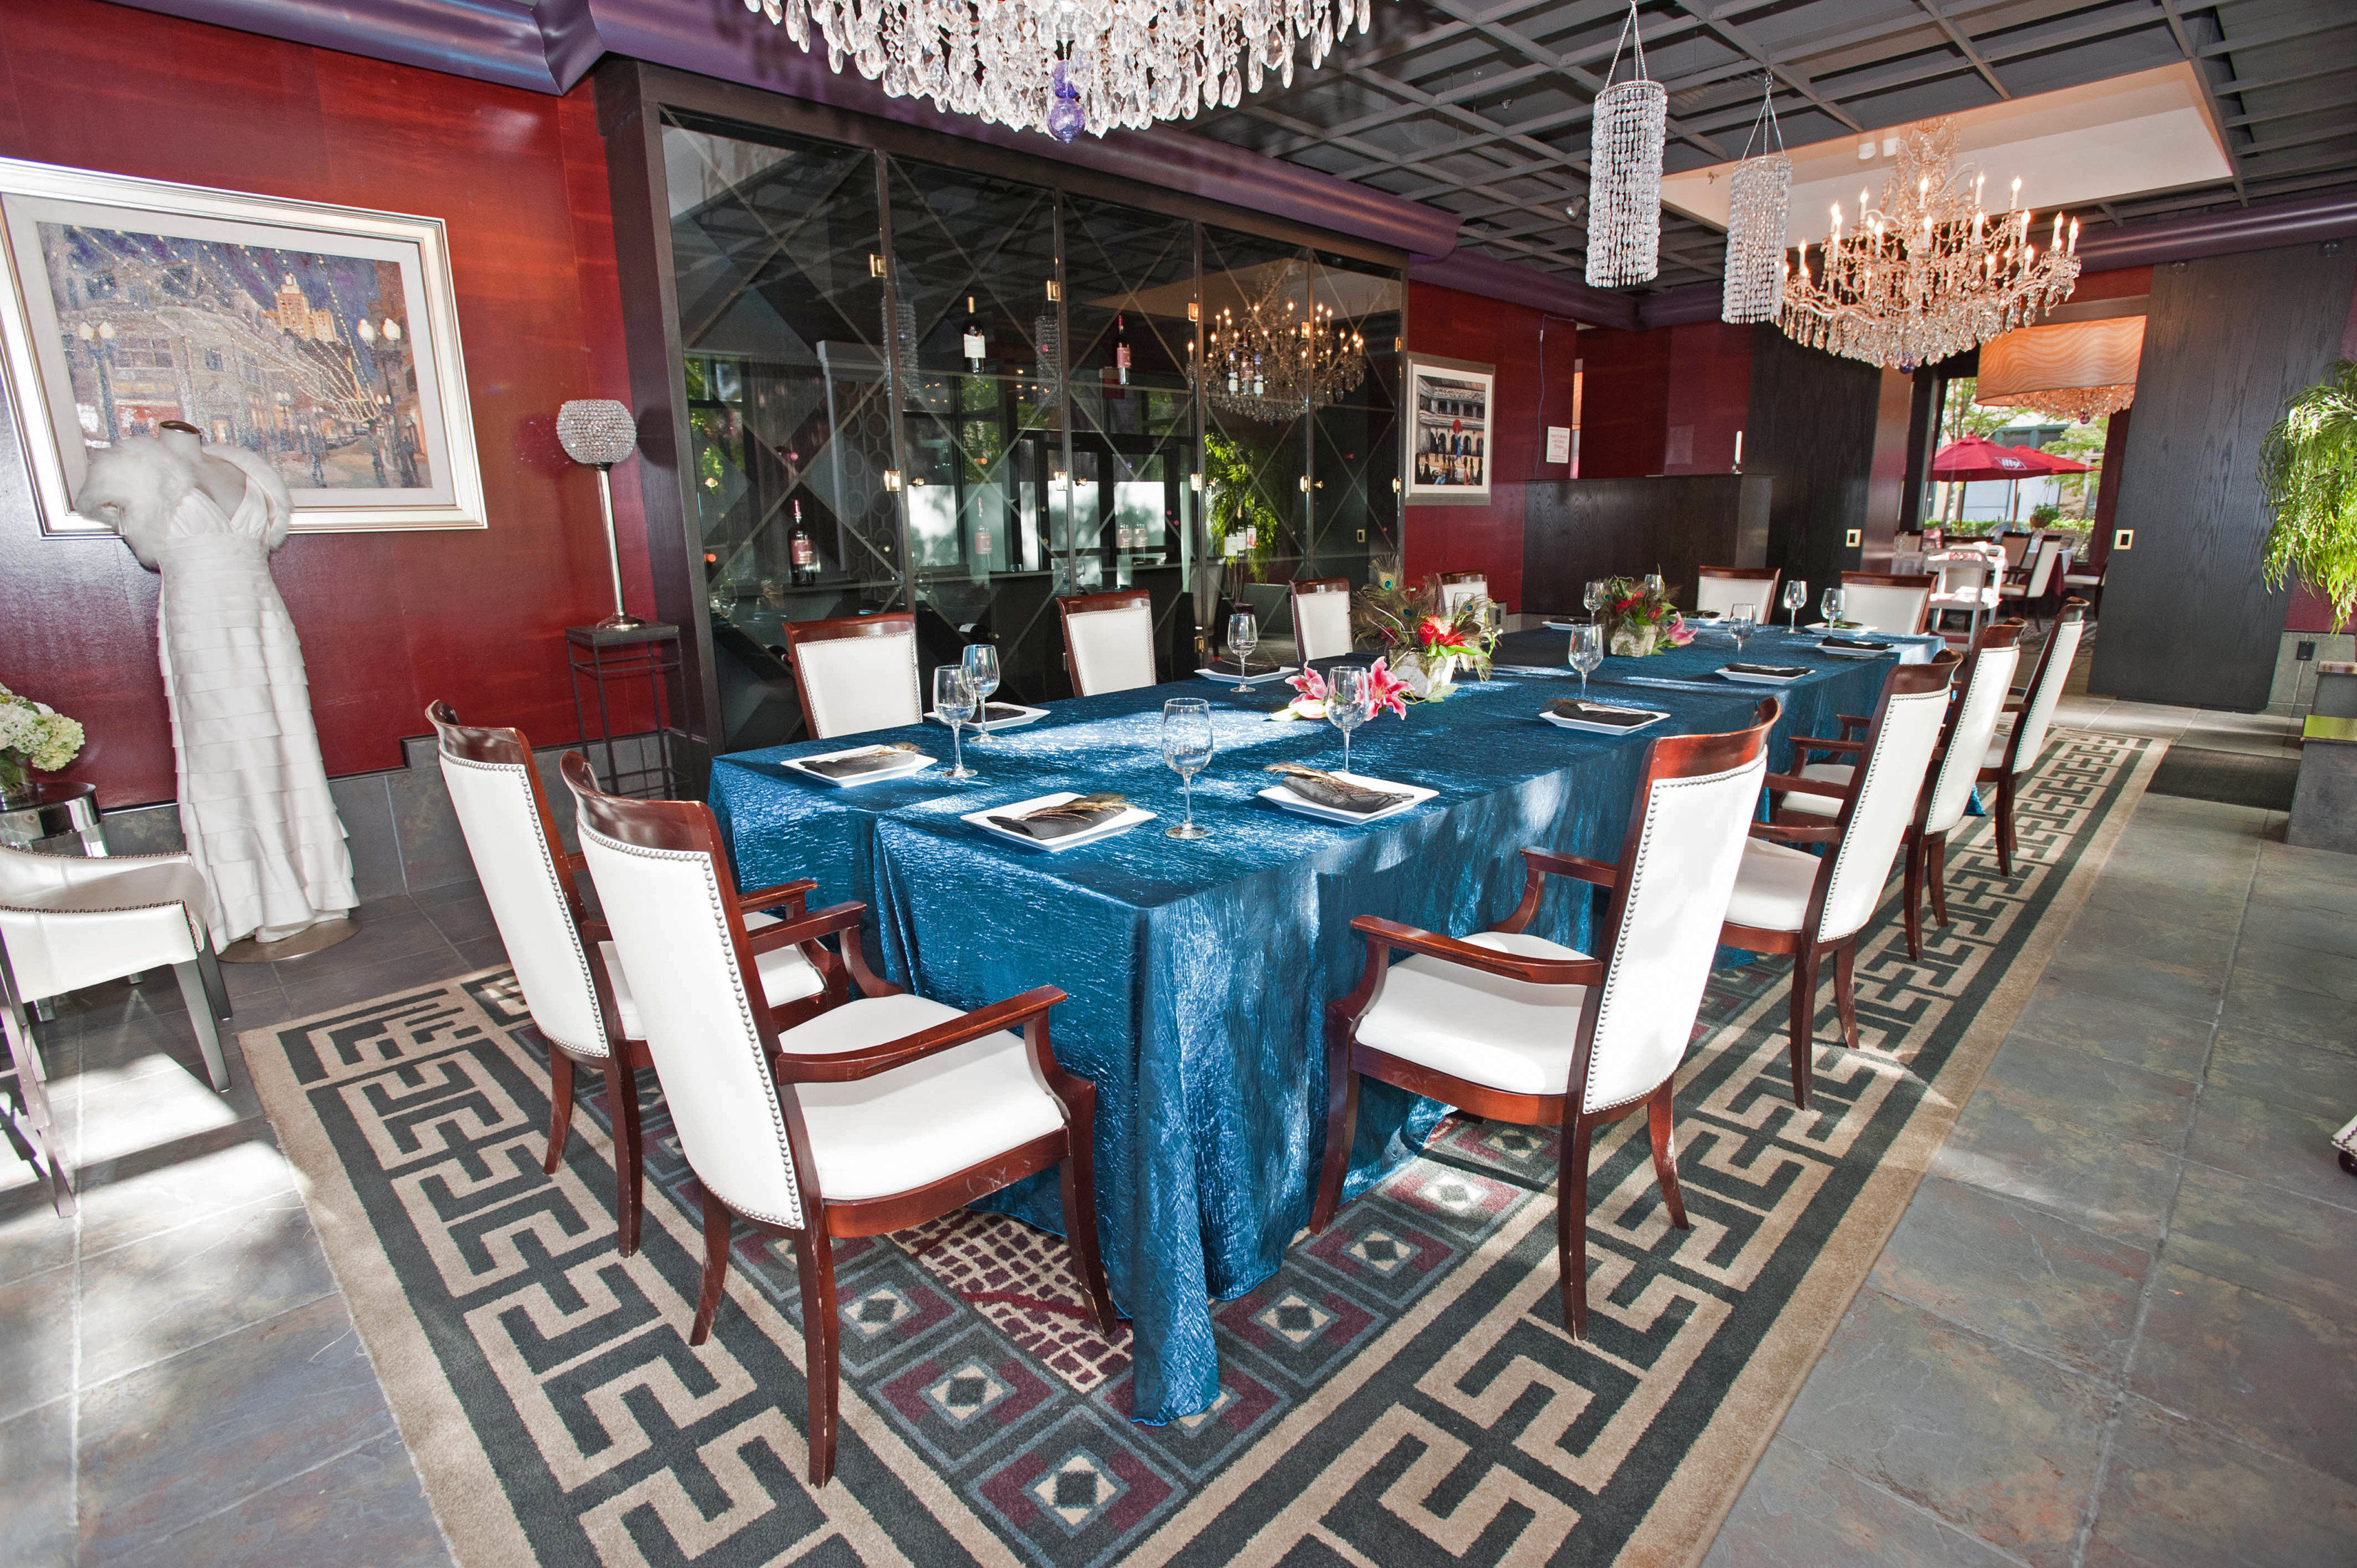 Boutique Classic Dining Drink Eat Historic chair restaurant Resort Bar function hall